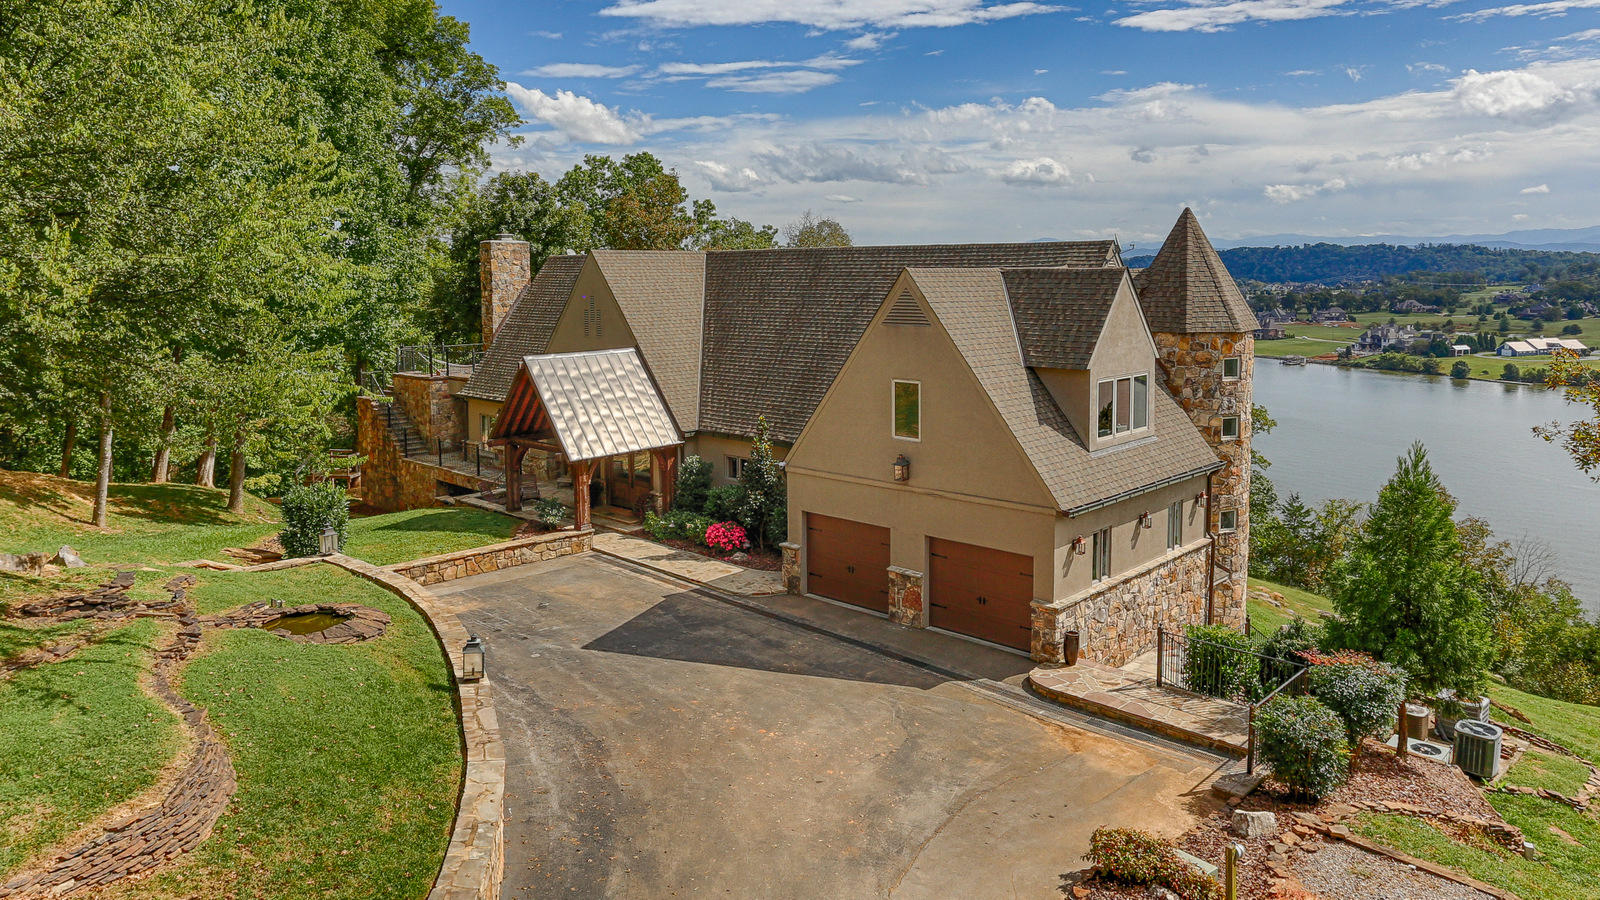 Swell West Knoxville Tn Real Estate Sequoyah Hills The Hughes Download Free Architecture Designs Boapuretrmadebymaigaardcom